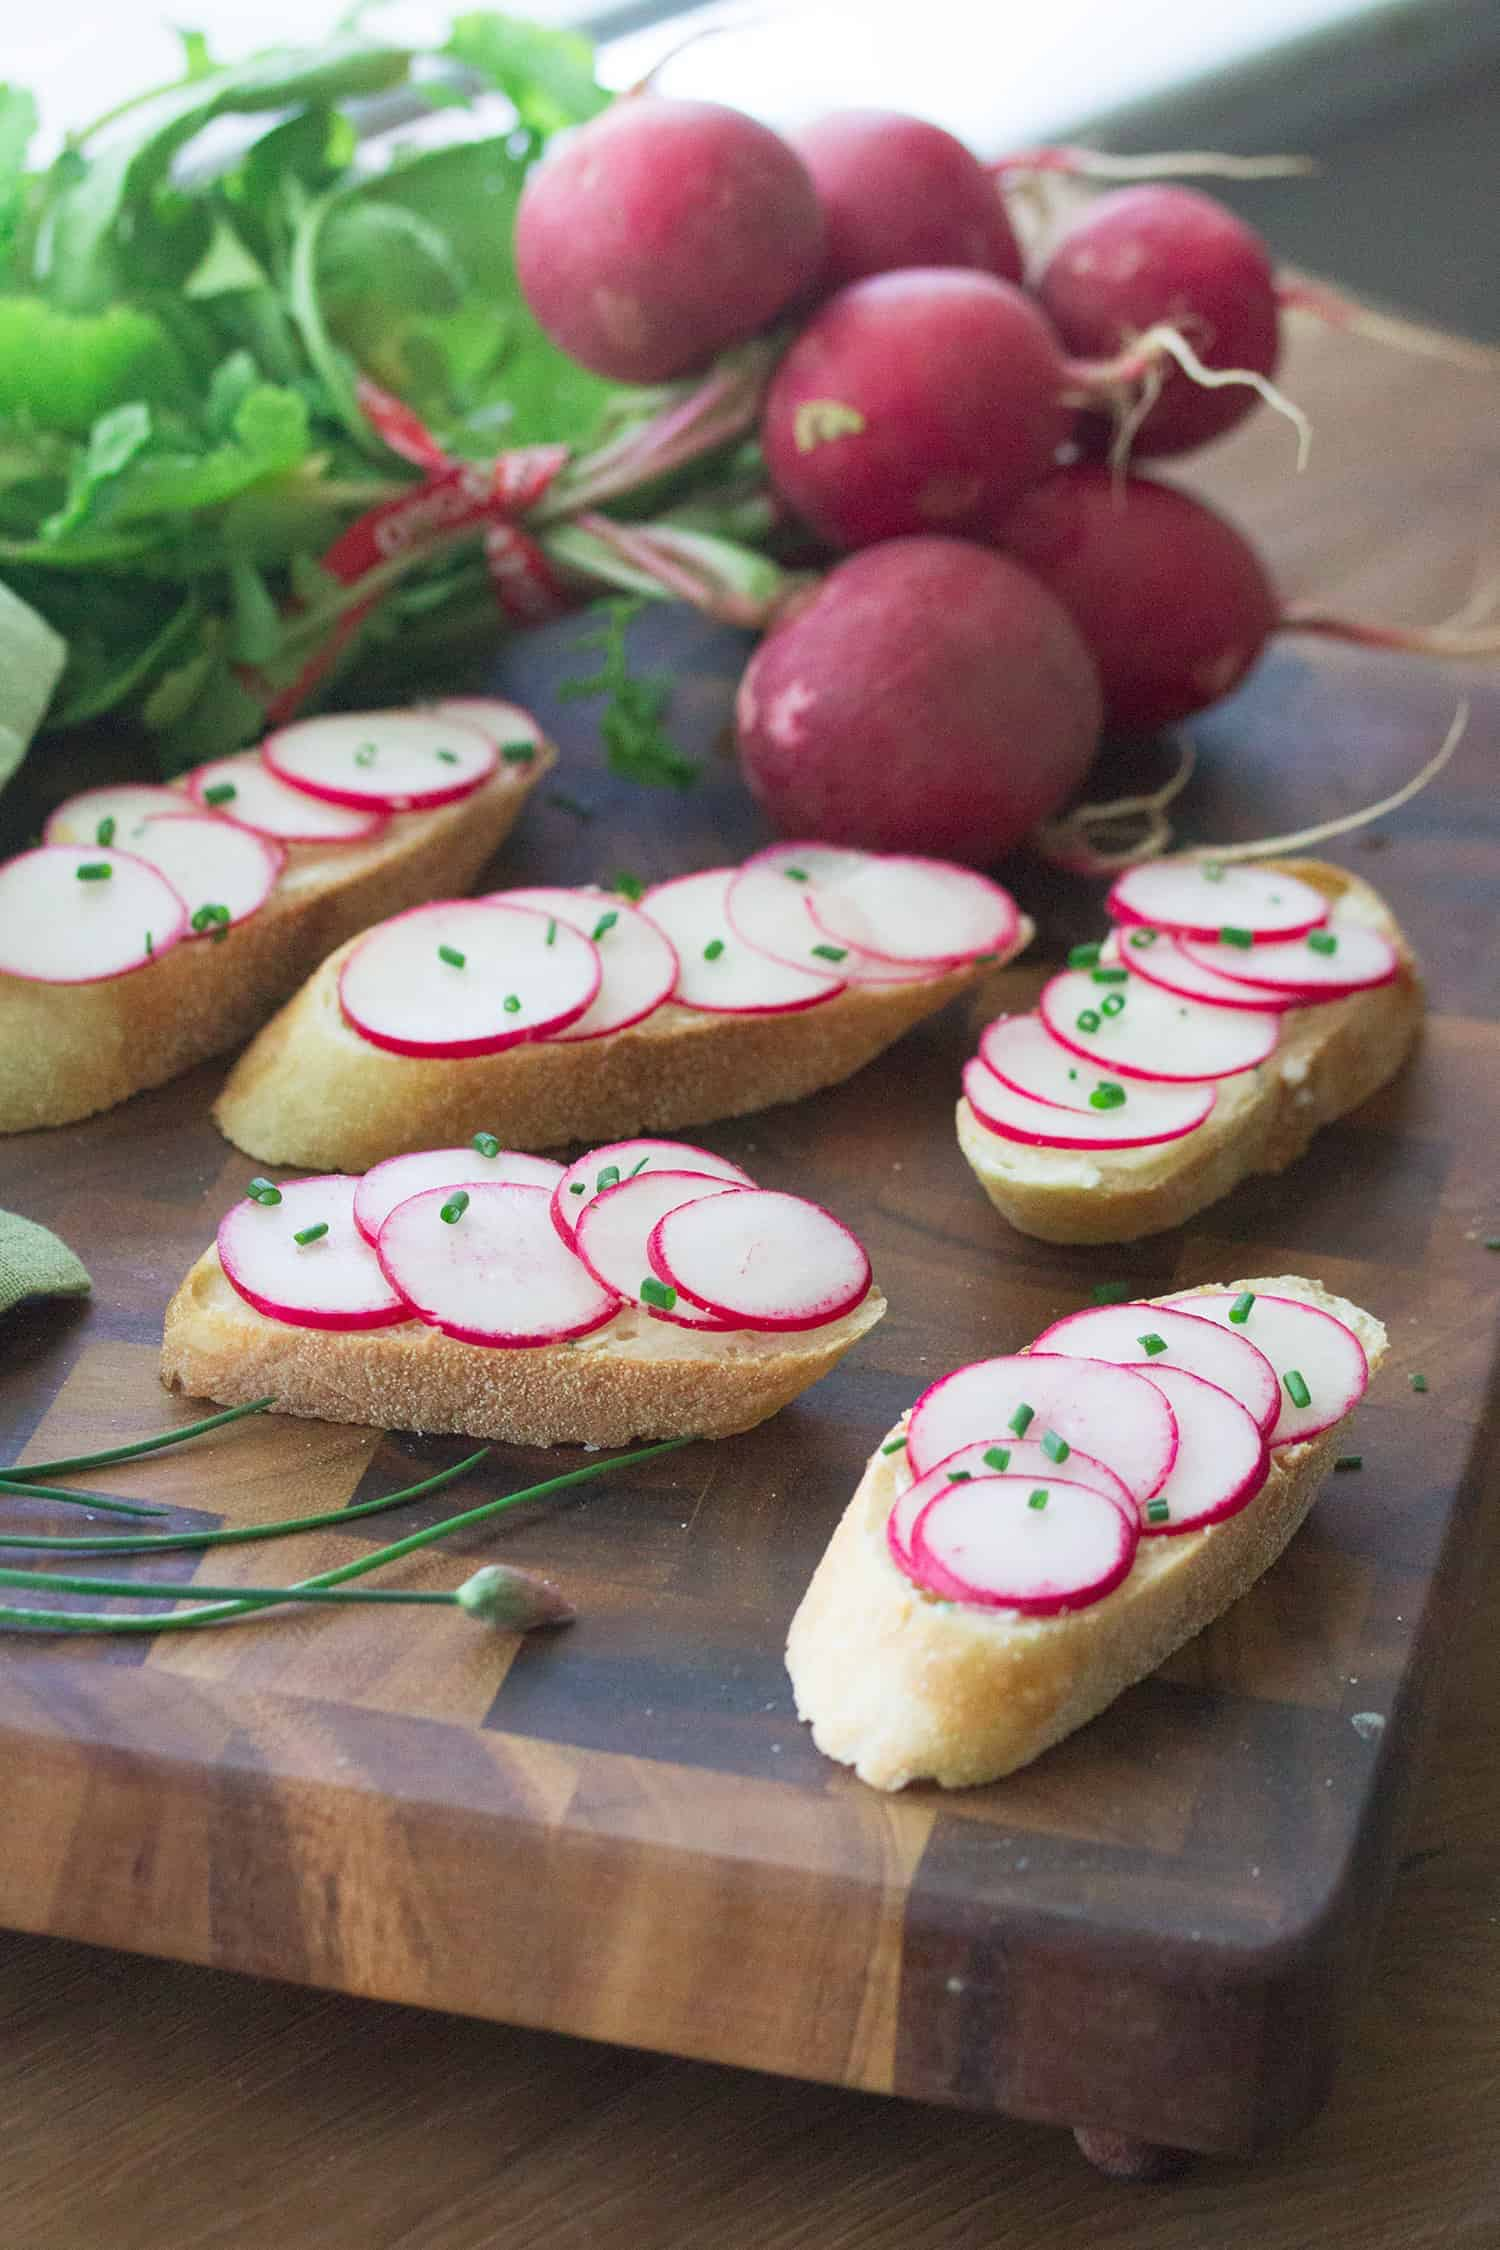 Positively Radishing: Radish Toasts with Chive Butter